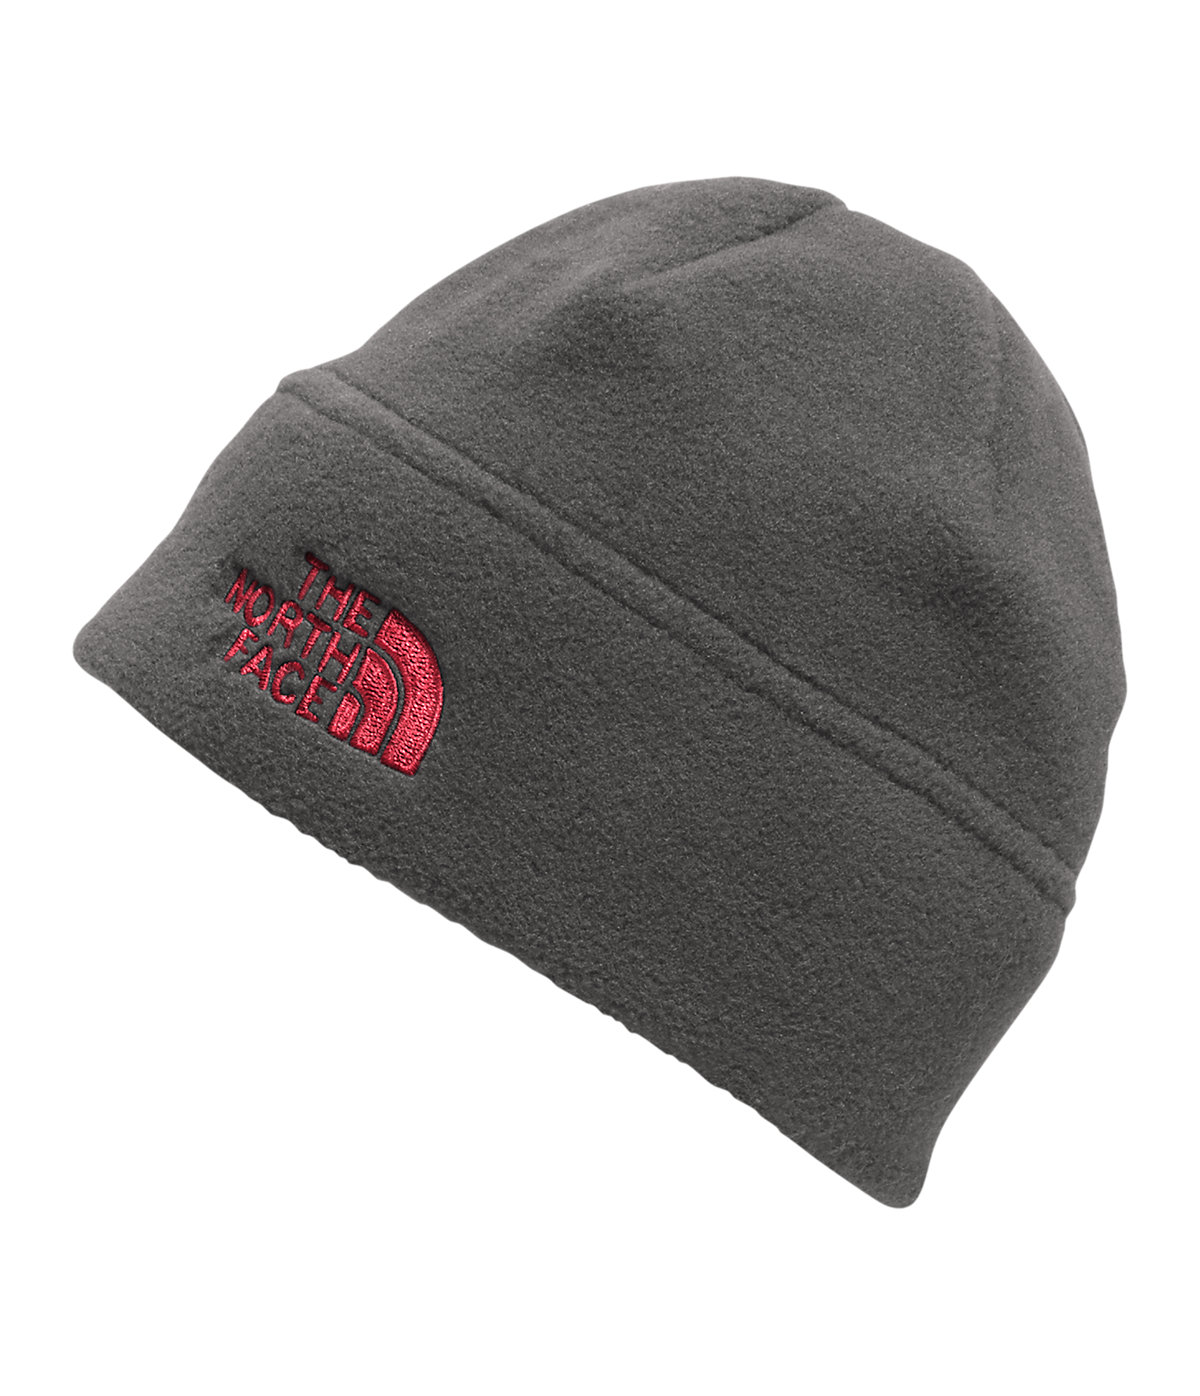 74314df9d The North Face Youth Standard Issue Beanie